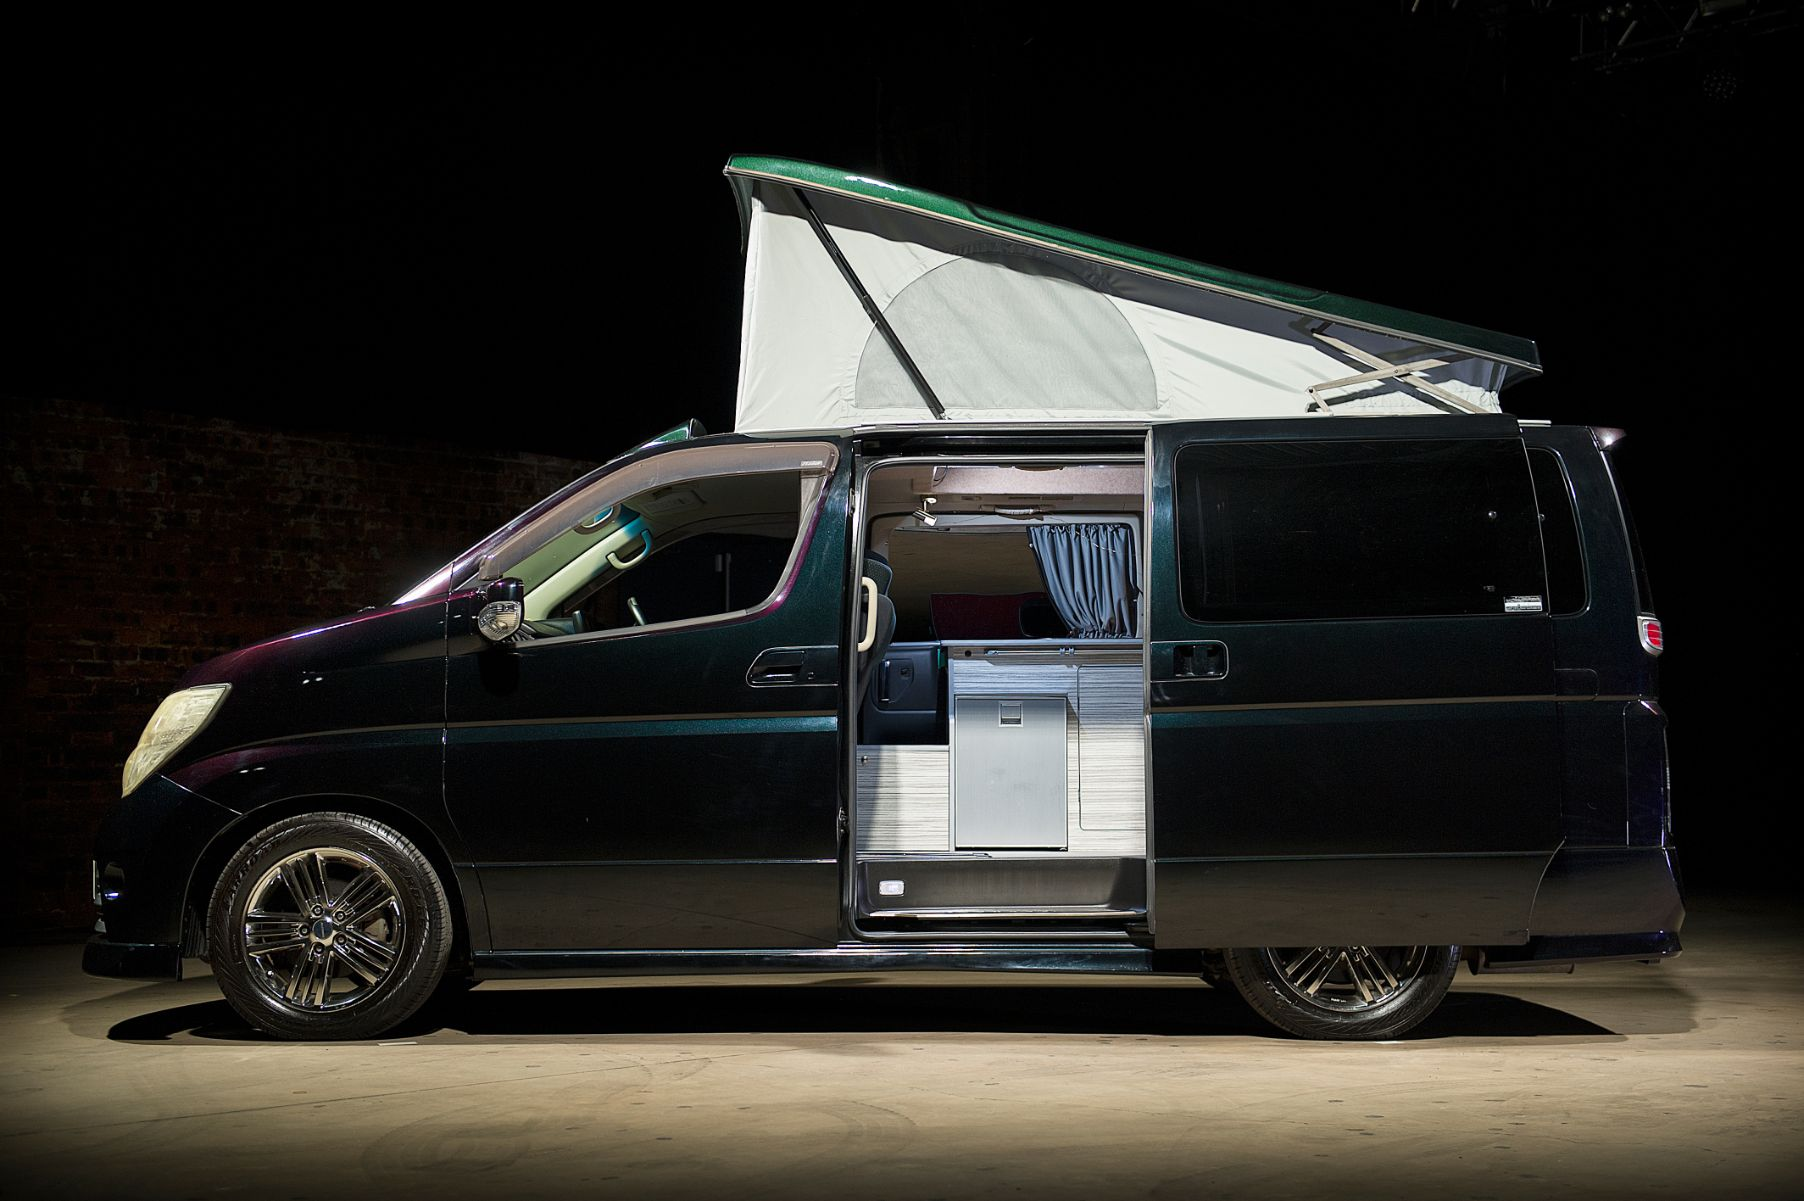 The Velocity - Nissan Elgrand - Black Campervan